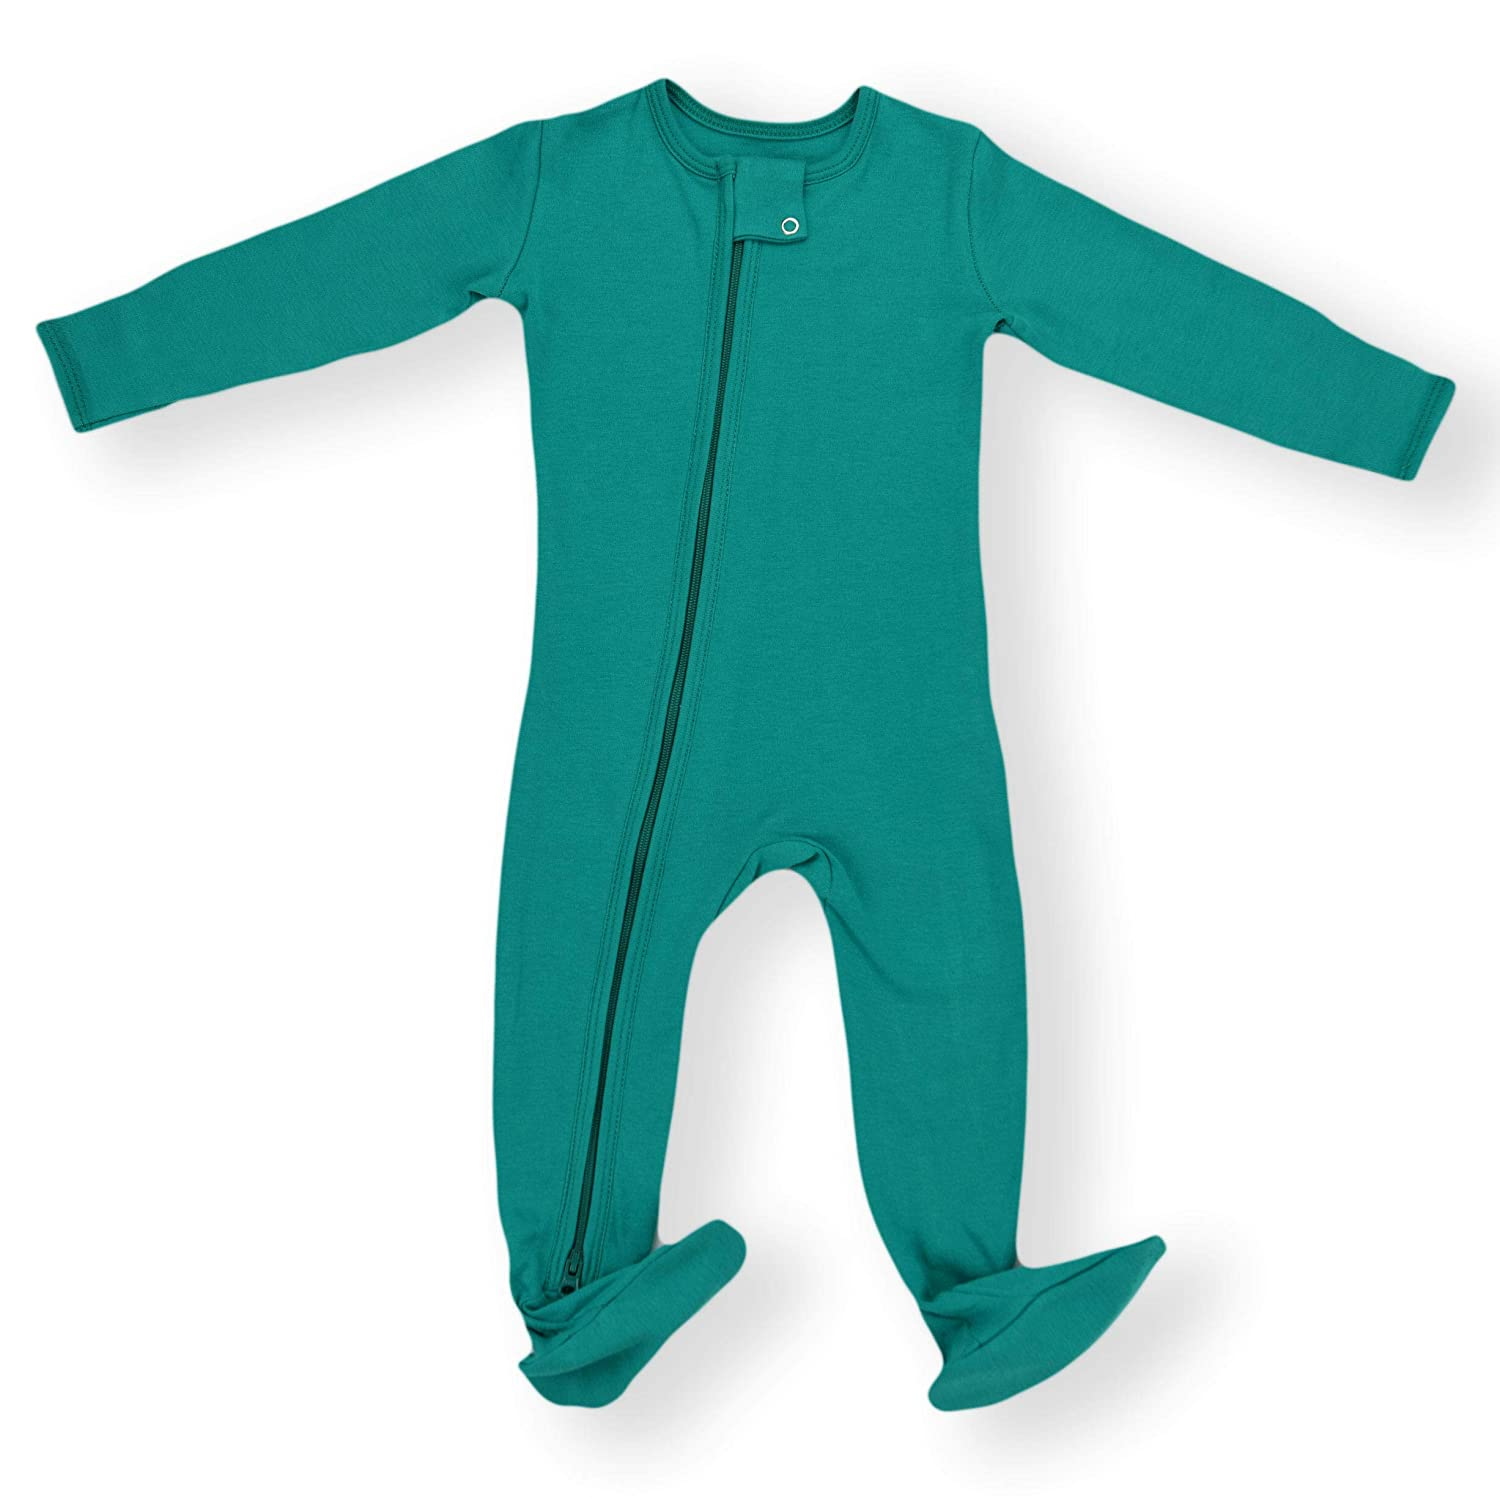 Earthy Organic Baby Pajamas 2-Way Zipper Sleeper Boy Girl (9 Sizes: Preemie - 3T) 100% Organic Cotton